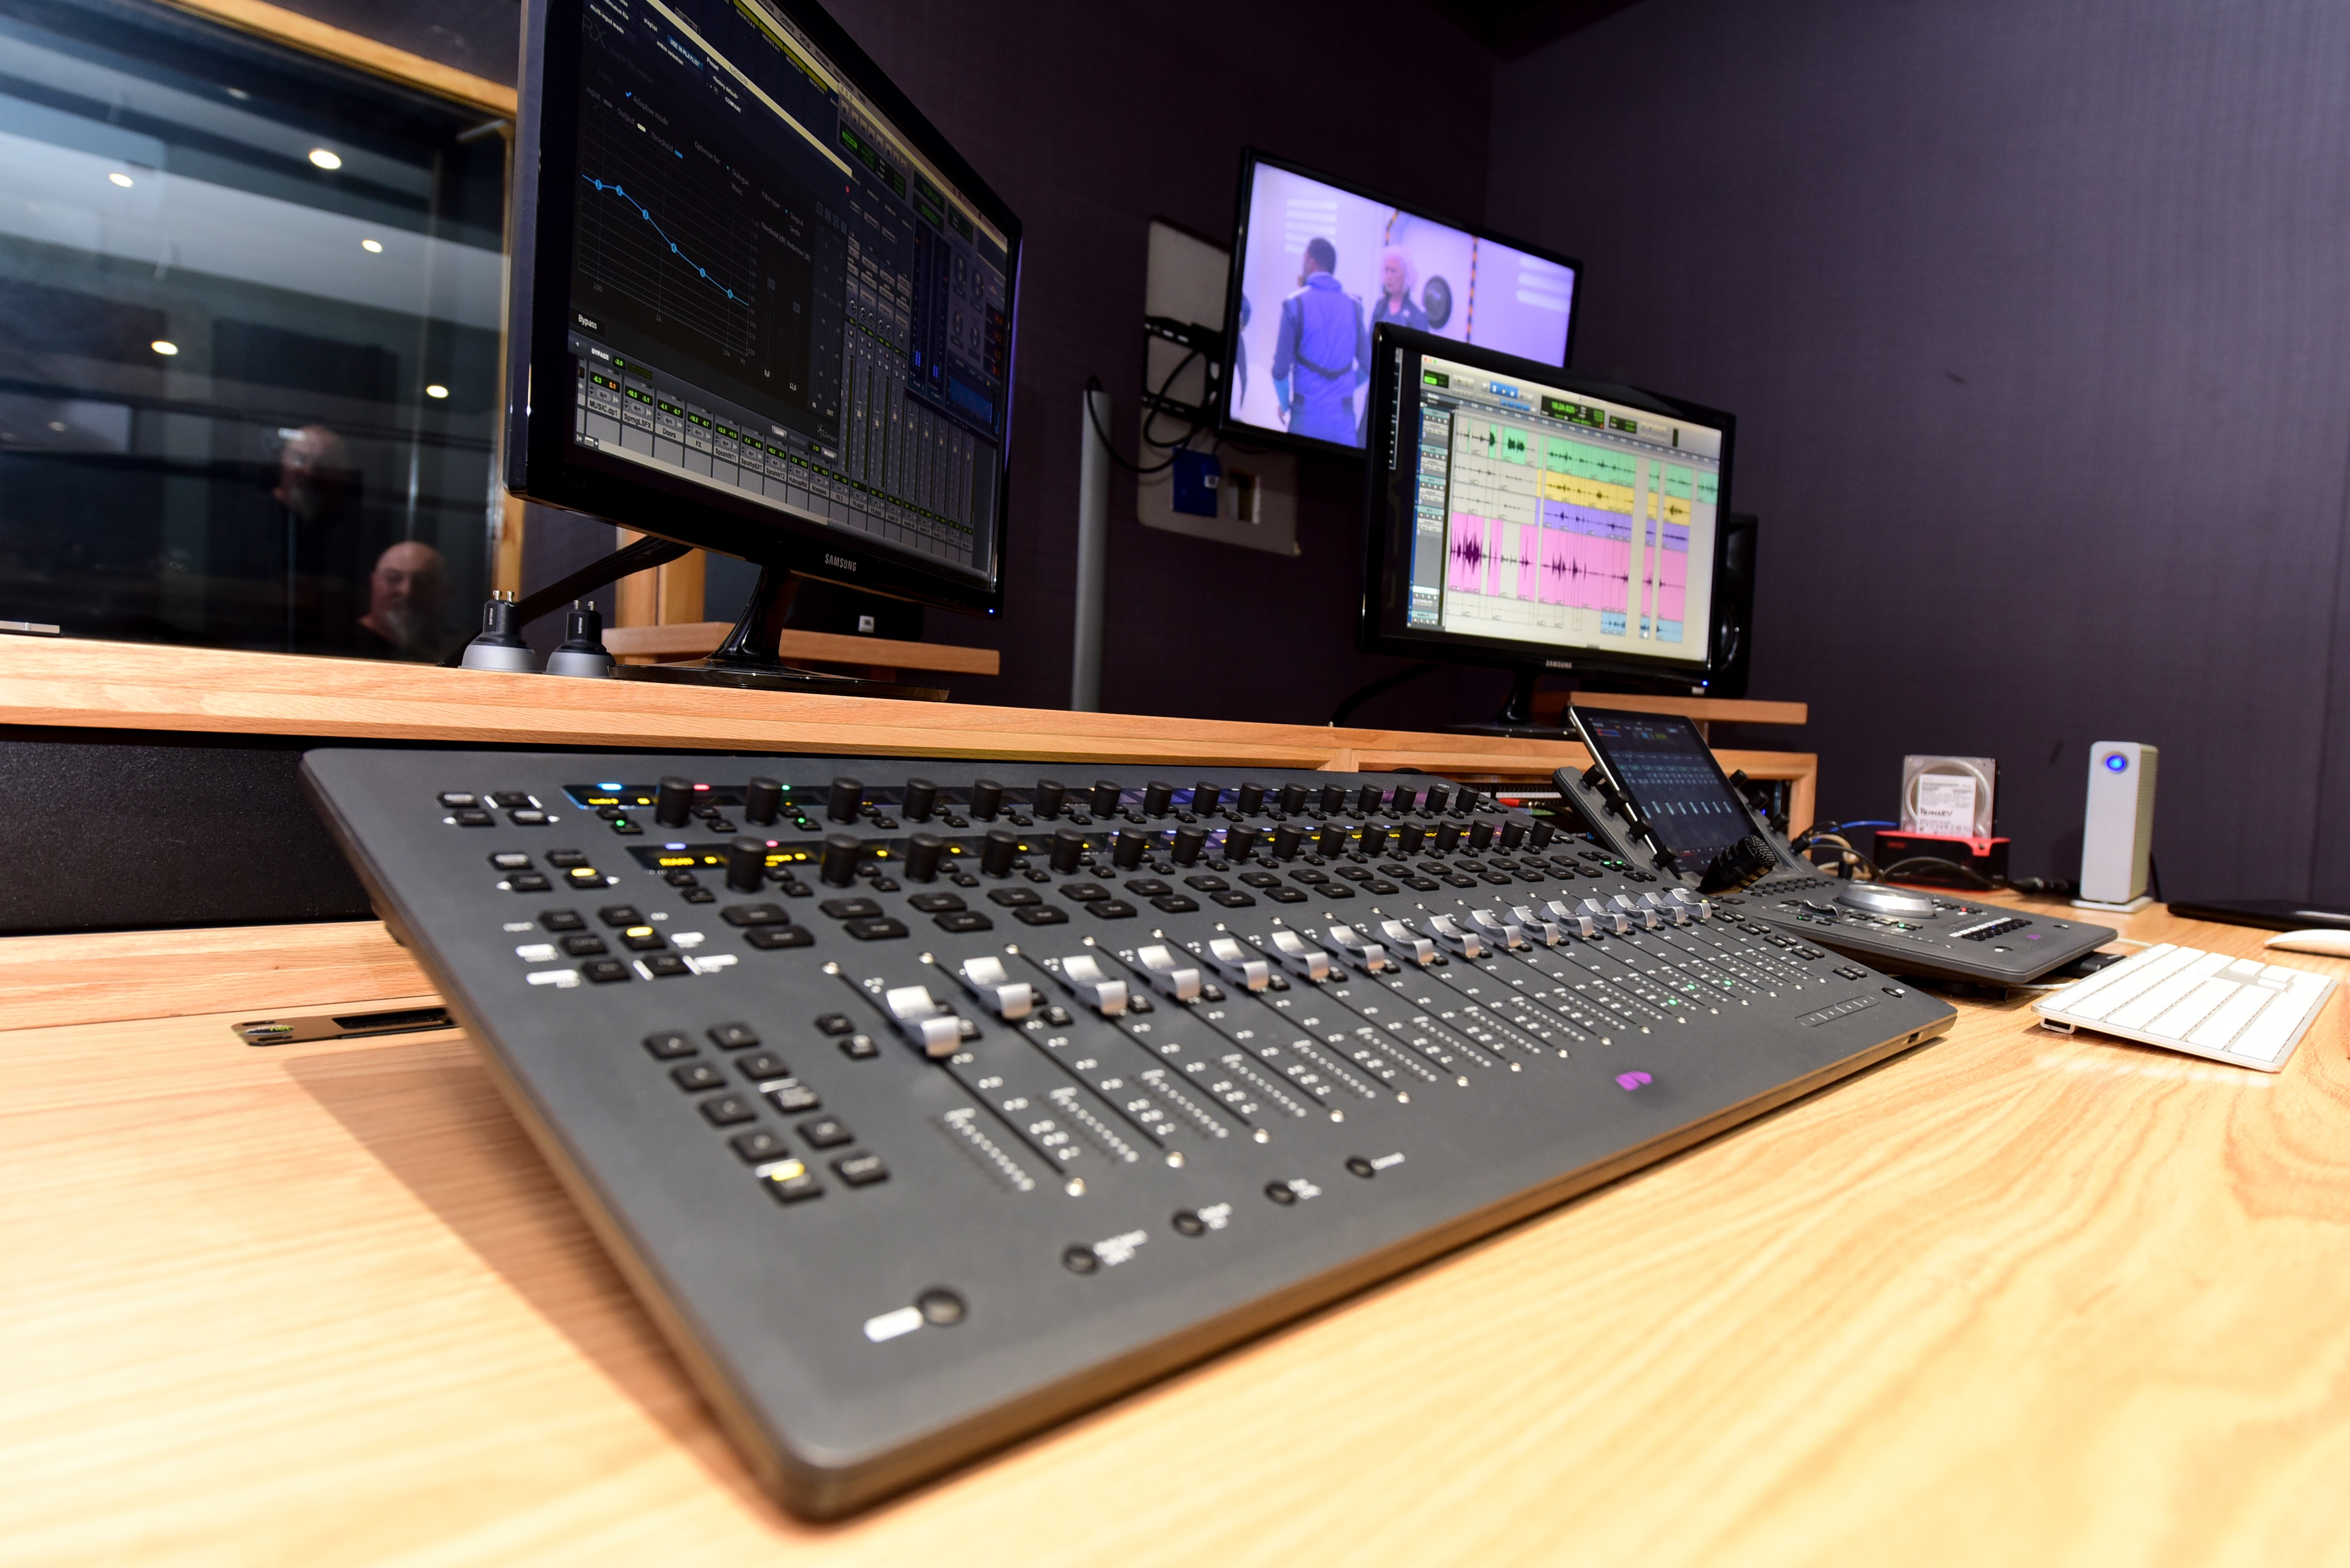 Sound Investments: <em>How Urban Brew built one of the most sophisticated audio studios in South Africa</em>